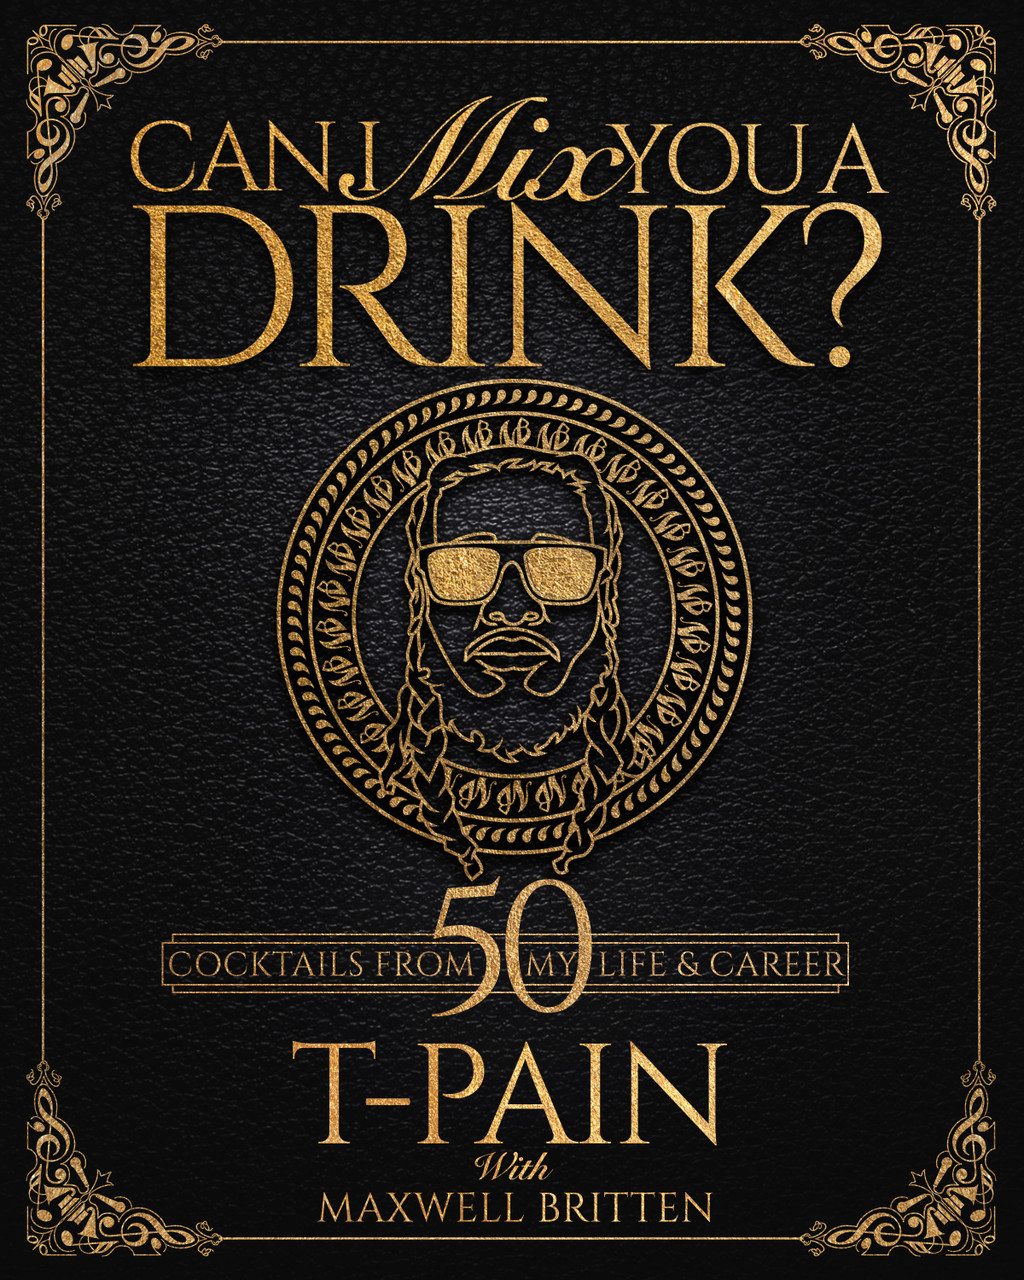 Can I Mix You a Drink? by T-Pain